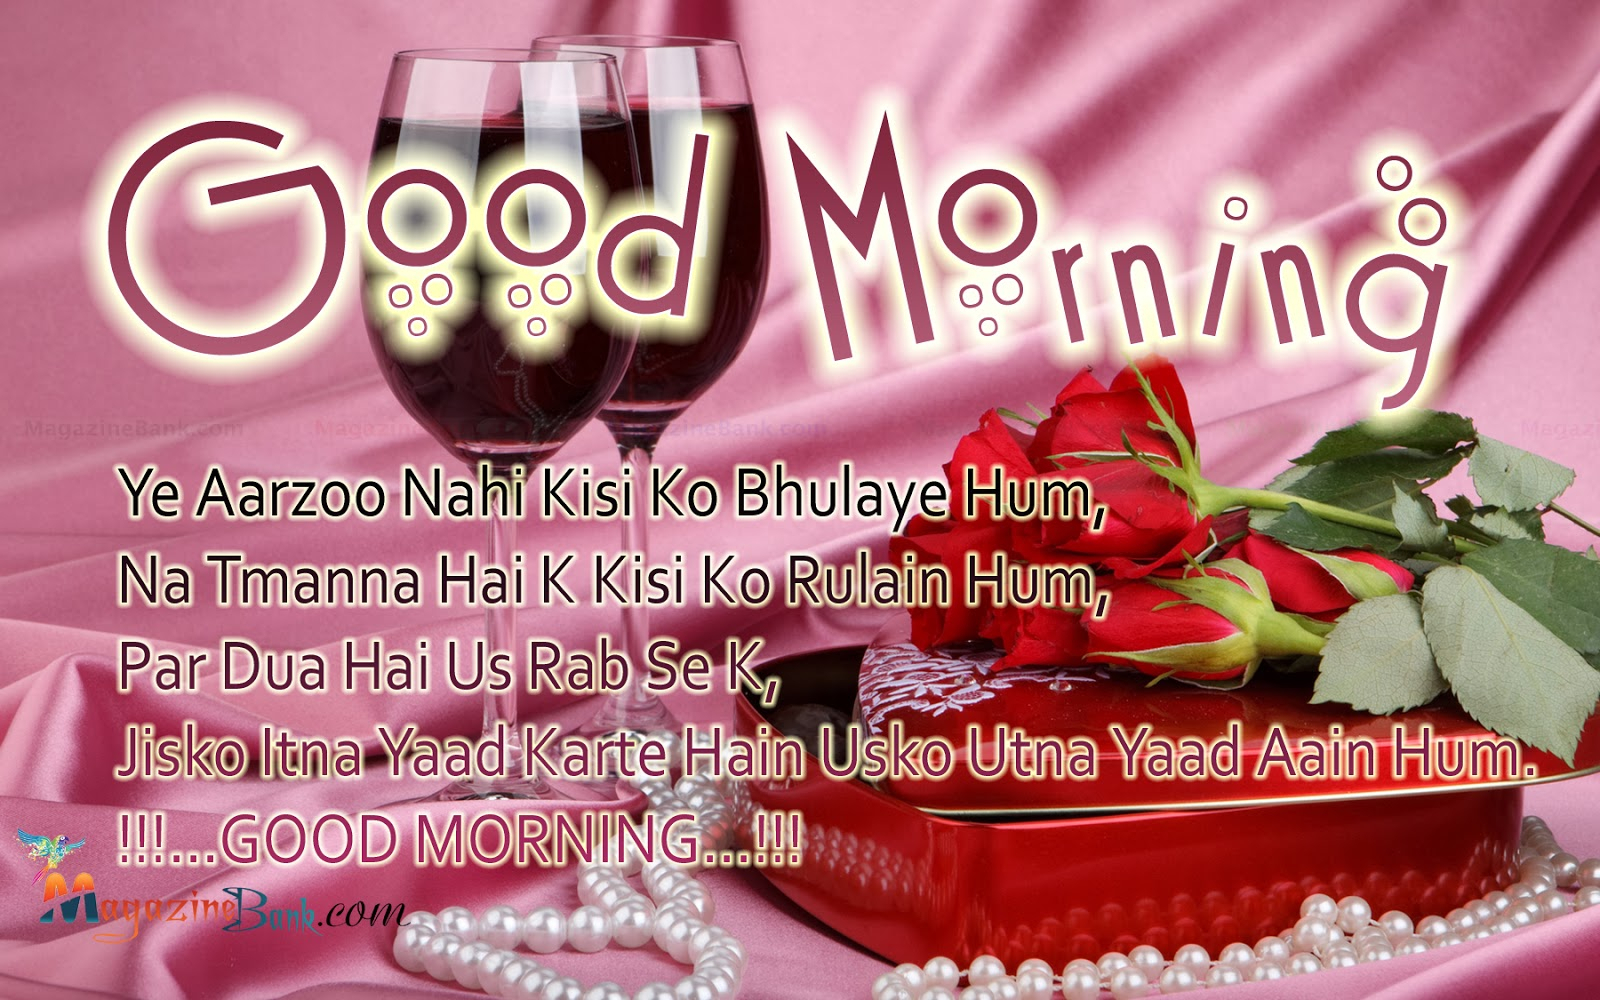 Good Morning Quotes in Urdu/hindi English - All Relatable